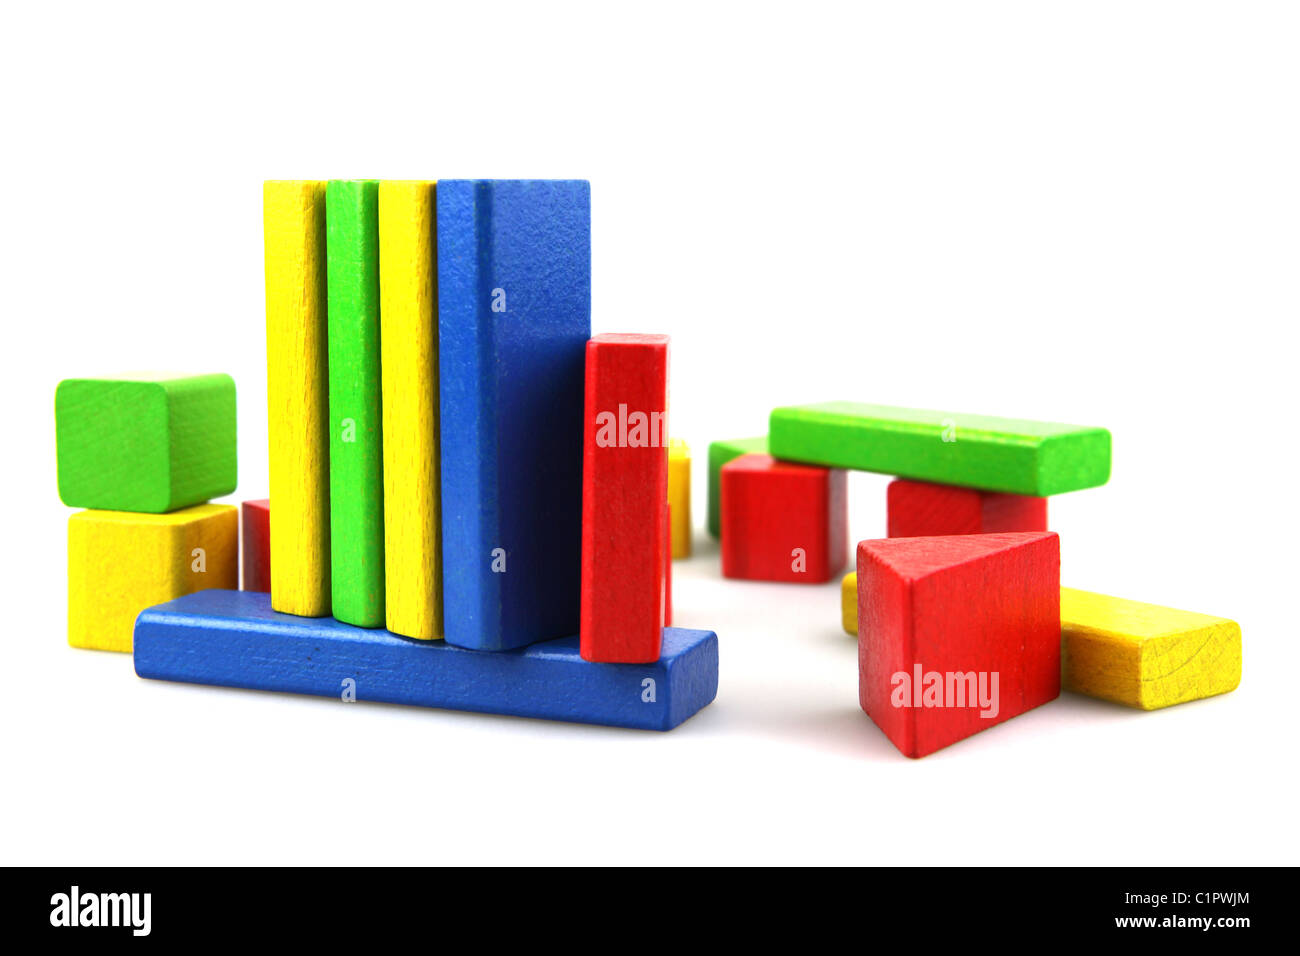 Wooden building blocks - Stock Image